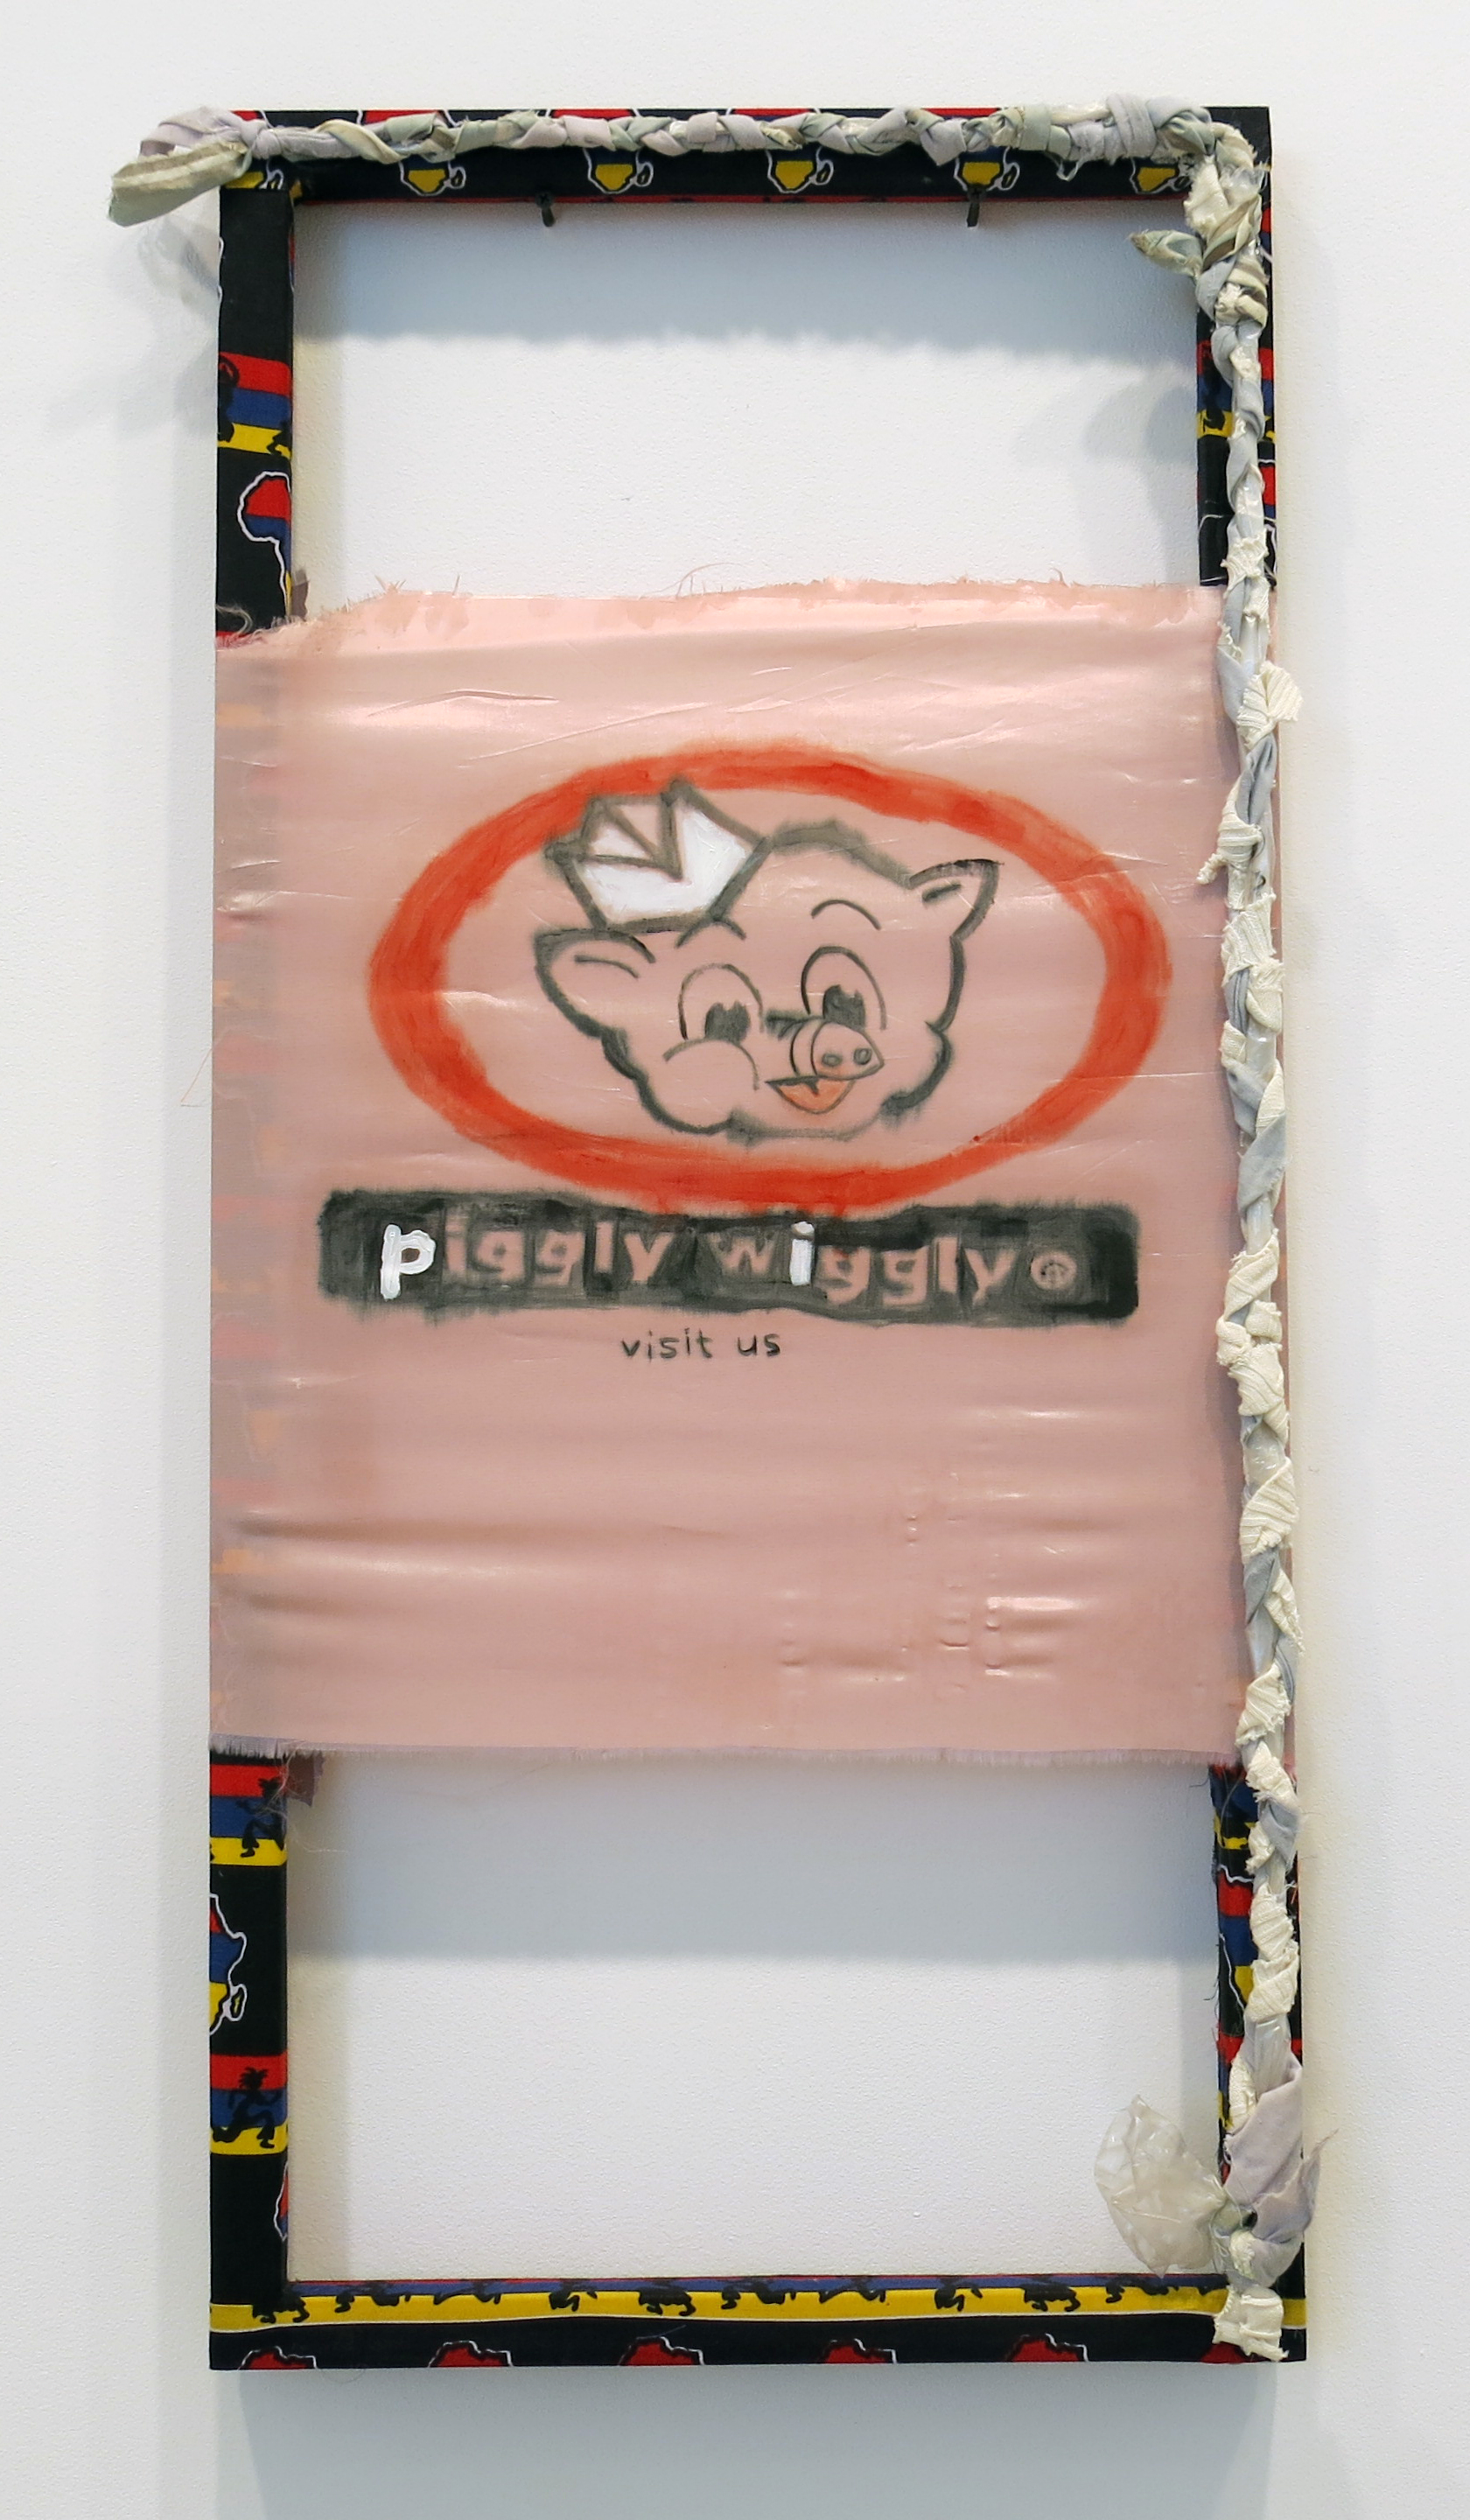 Tameka Norris   Piggly Wiggly 1 , 2014 acrylic and oil on fabric 38 x 18 inches 96.5 x 45.7 cm